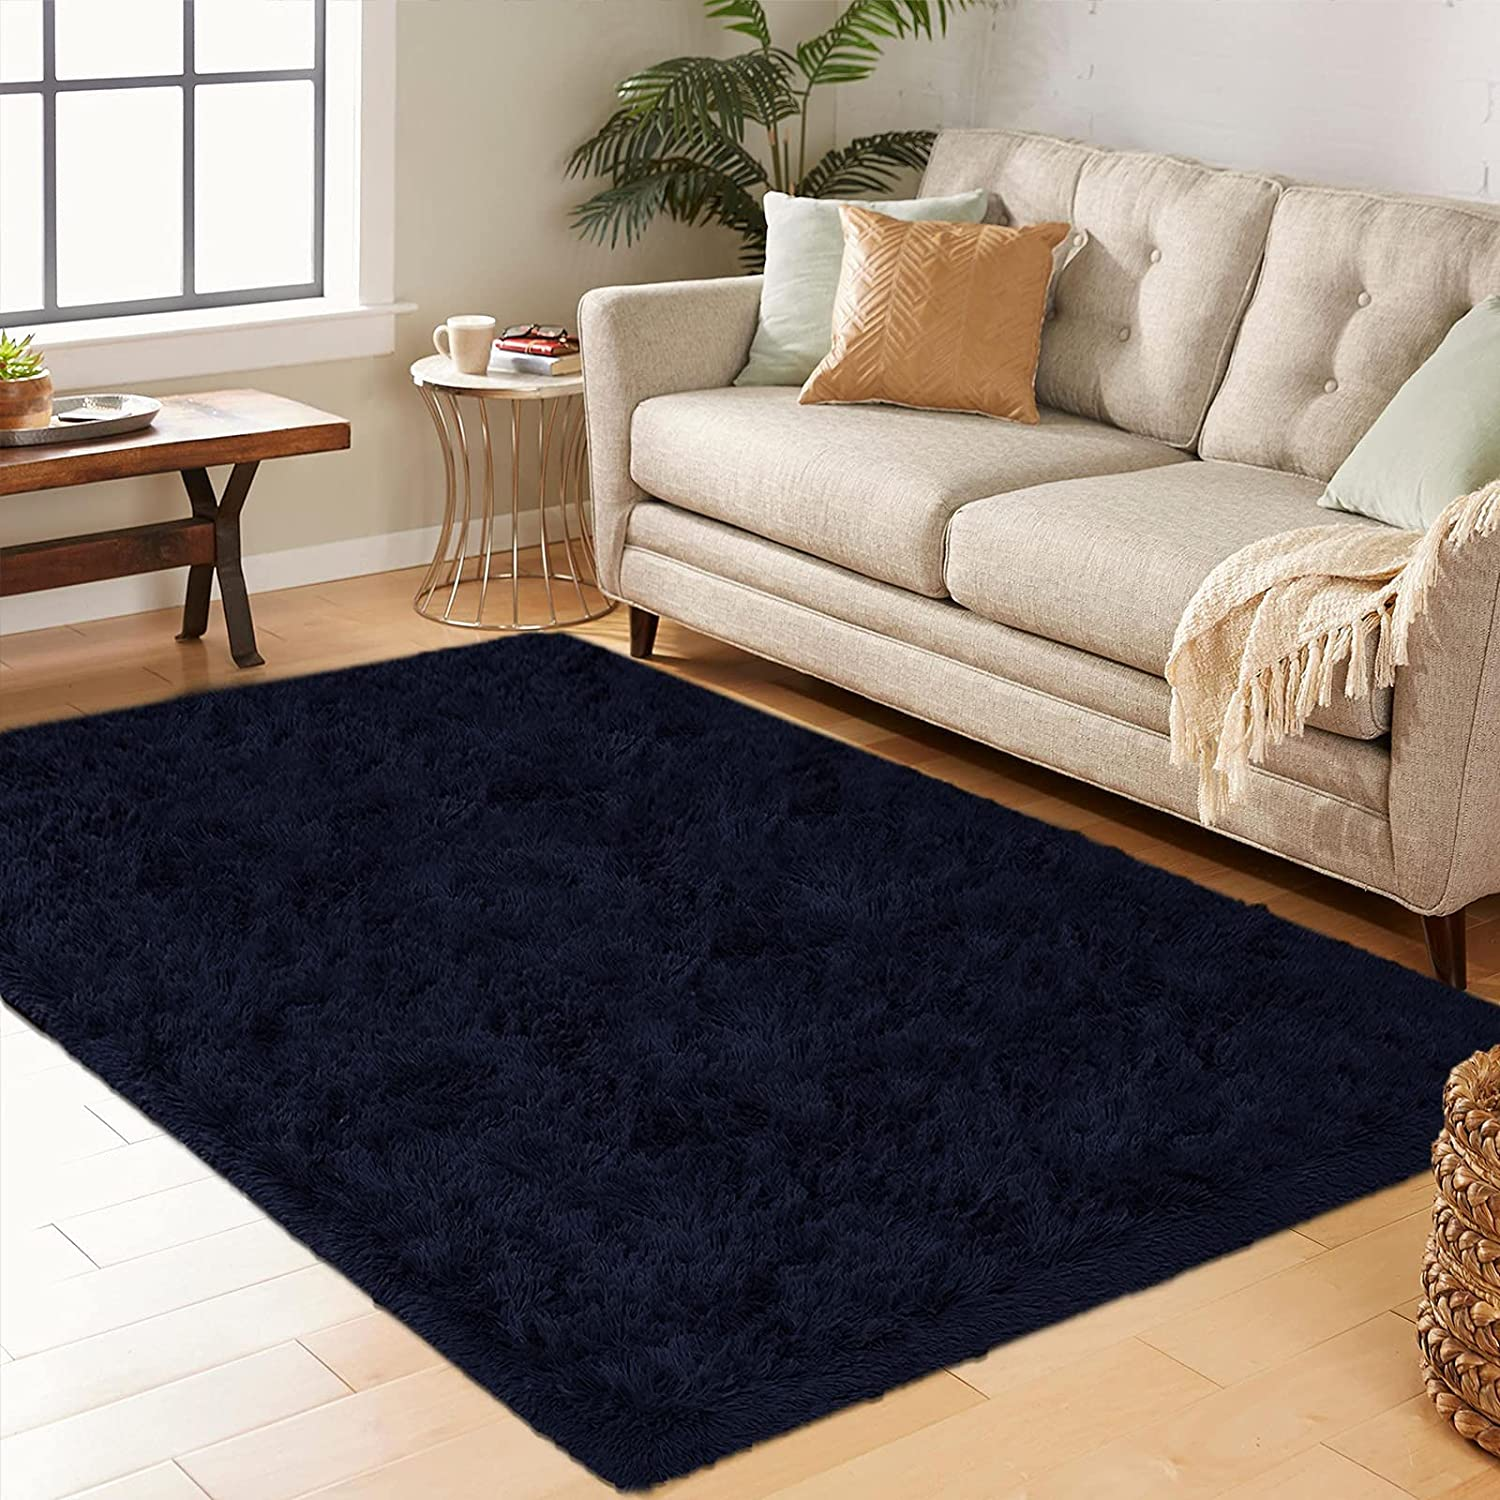 Cetoton Super Soft Fluffy Area Rug for Living Room, Plush Shag Rugs for Bedroom, Shaggy Fuzzy Carpet for Kids Room Nursery Boys Girls Furry Comfy Cozy Home Decor Accent Indoor Floor Mat 5x8 Navy